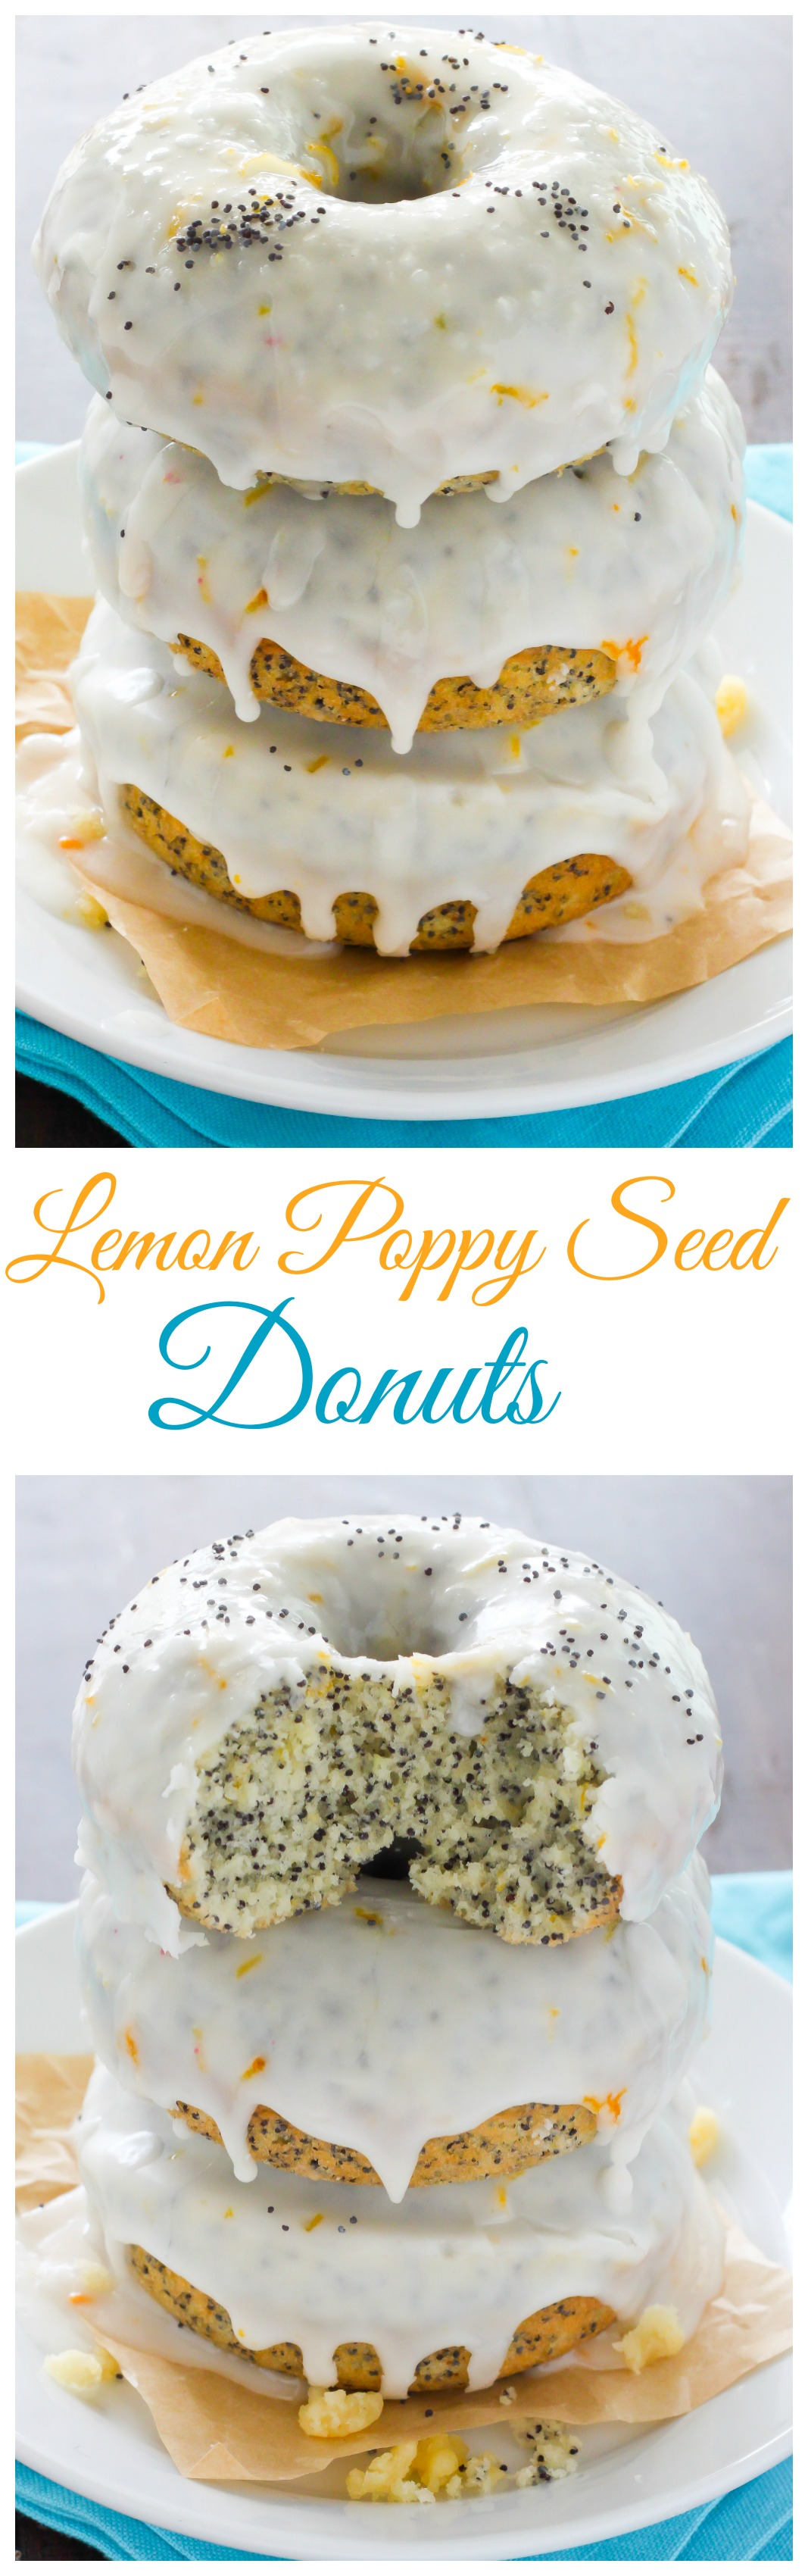 Light and Fluffy, these Homemade Lemon Poppy Seed Donuts are baked not fried! Ready in just 15 minutes!